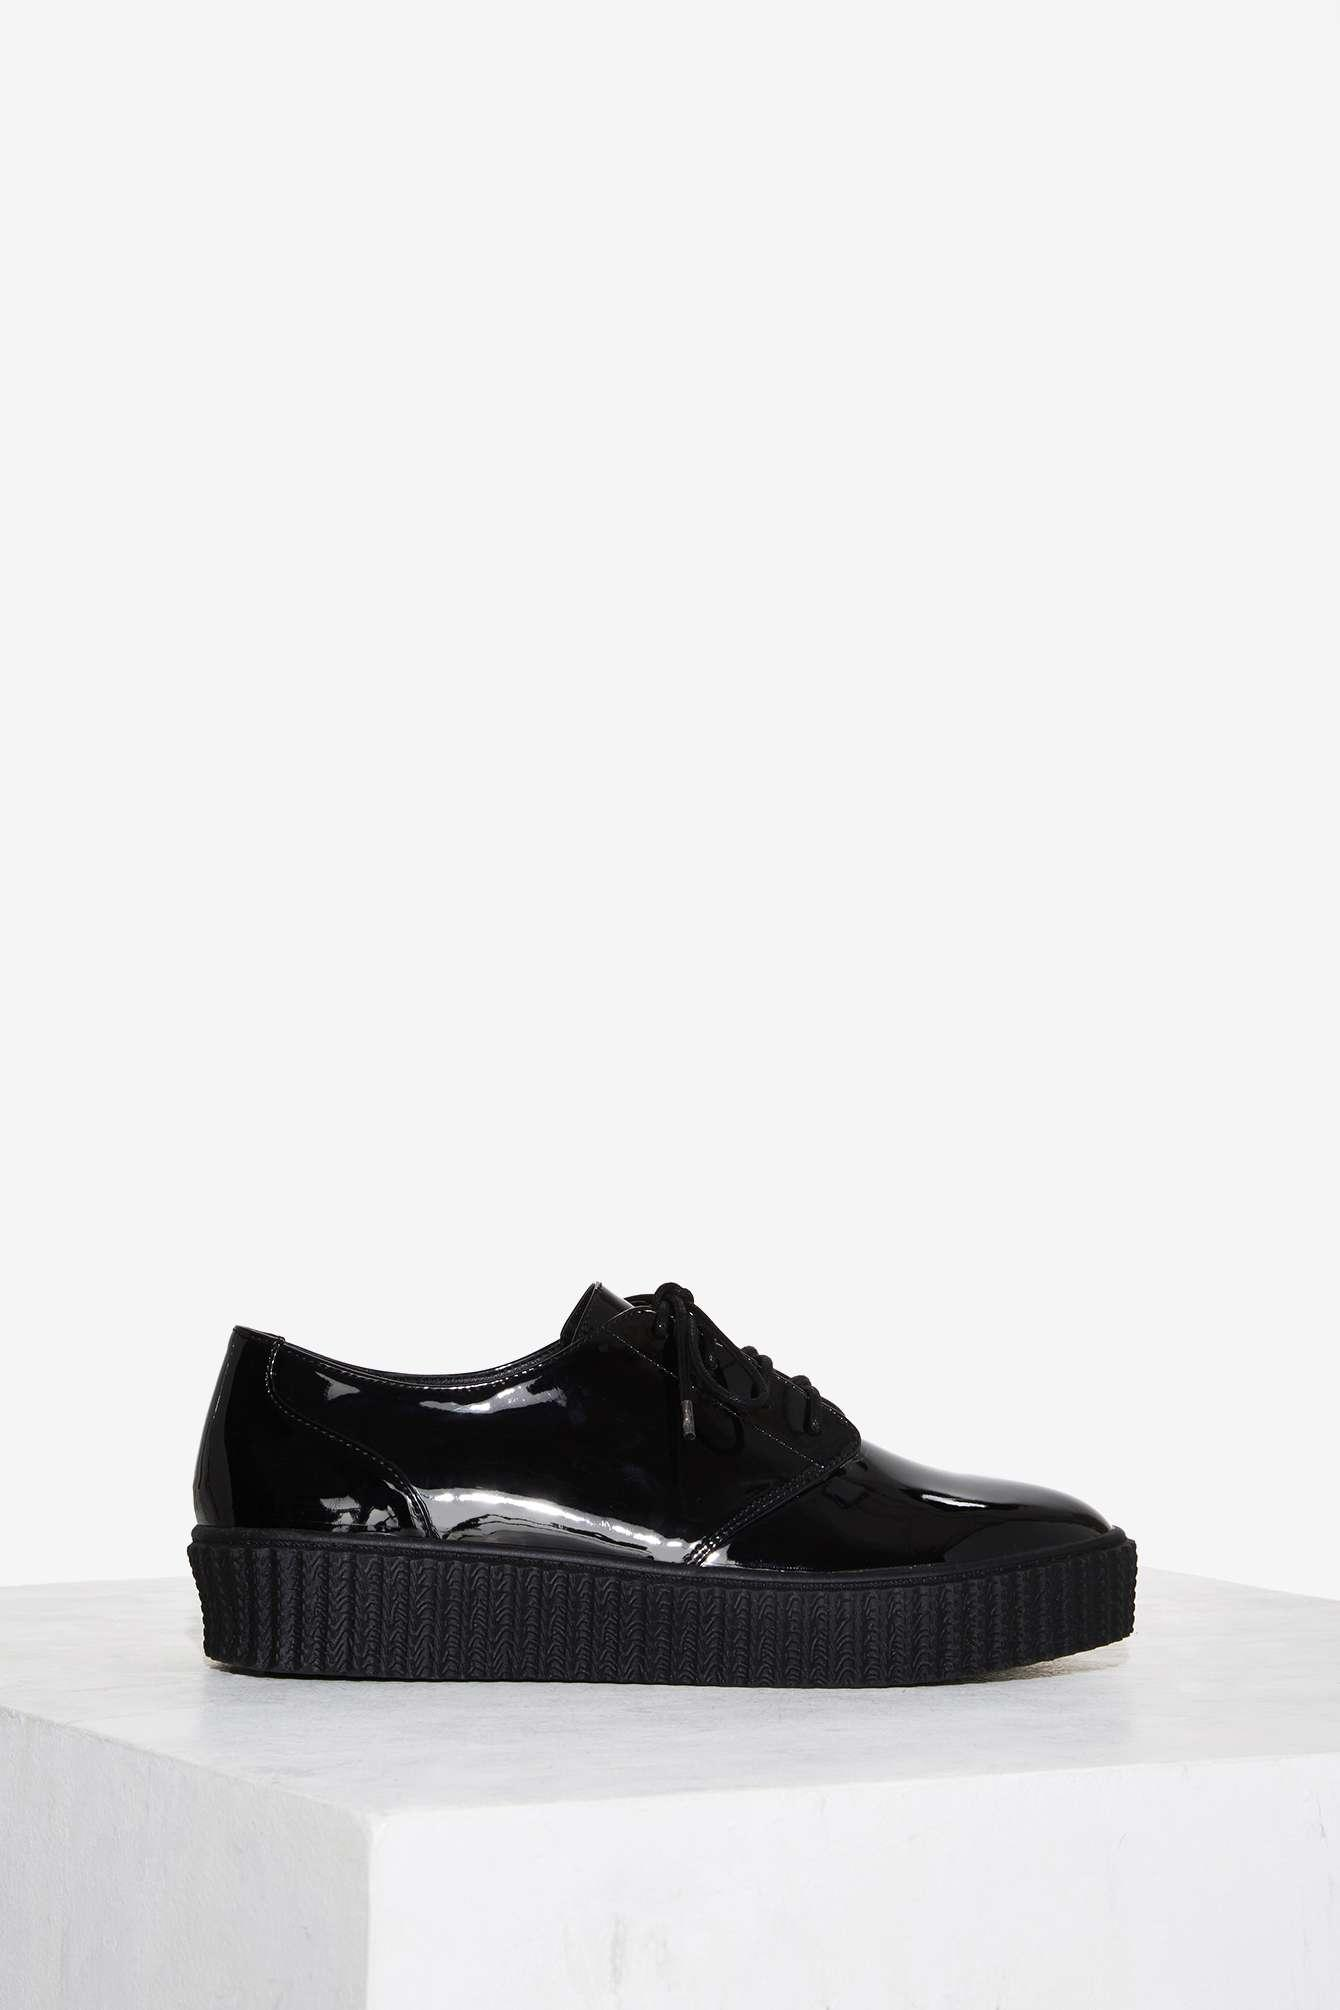 shellys patent leather oxford shoe in black